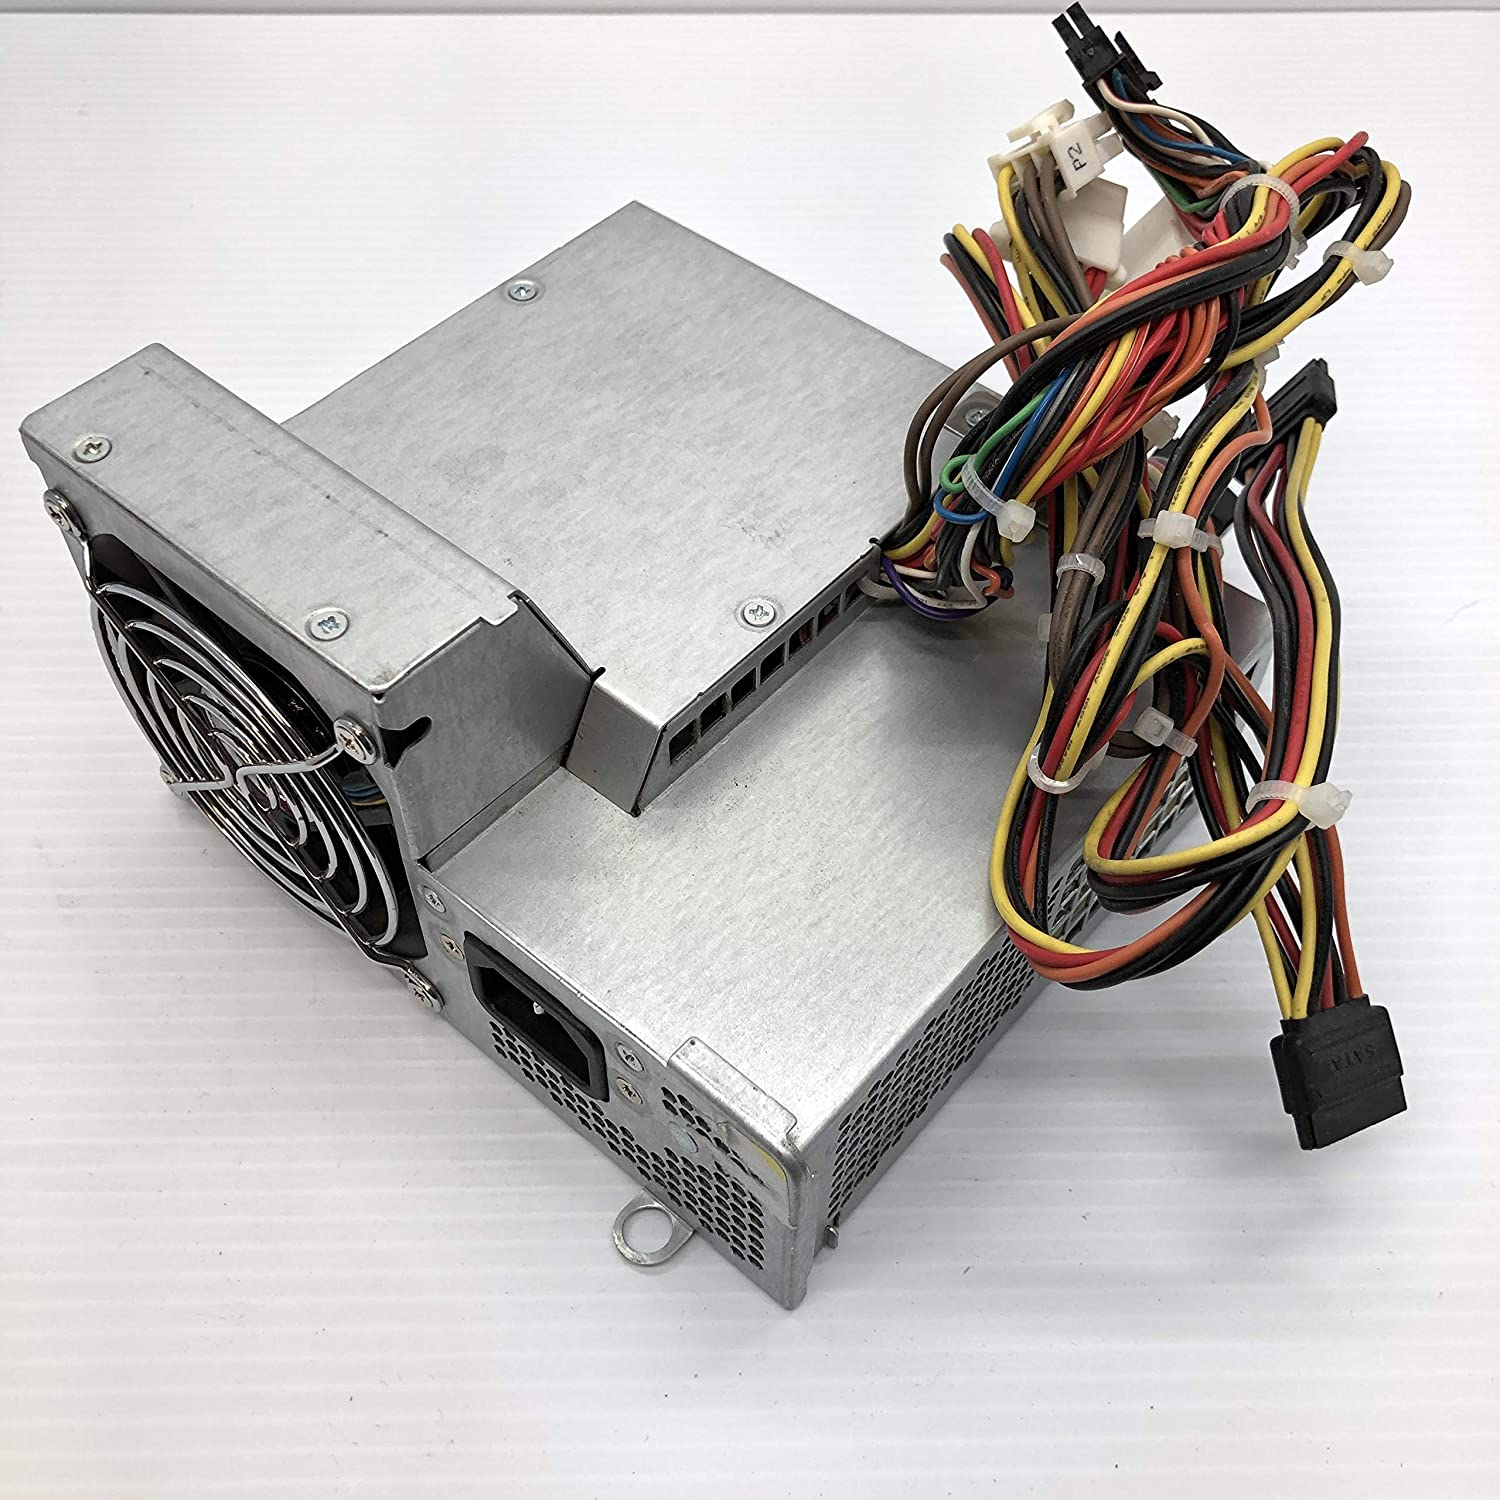 HP 445102-002 Desktop Power Supply 240W RP5700 LiteOn Model PS-6241-02HD 578189-001